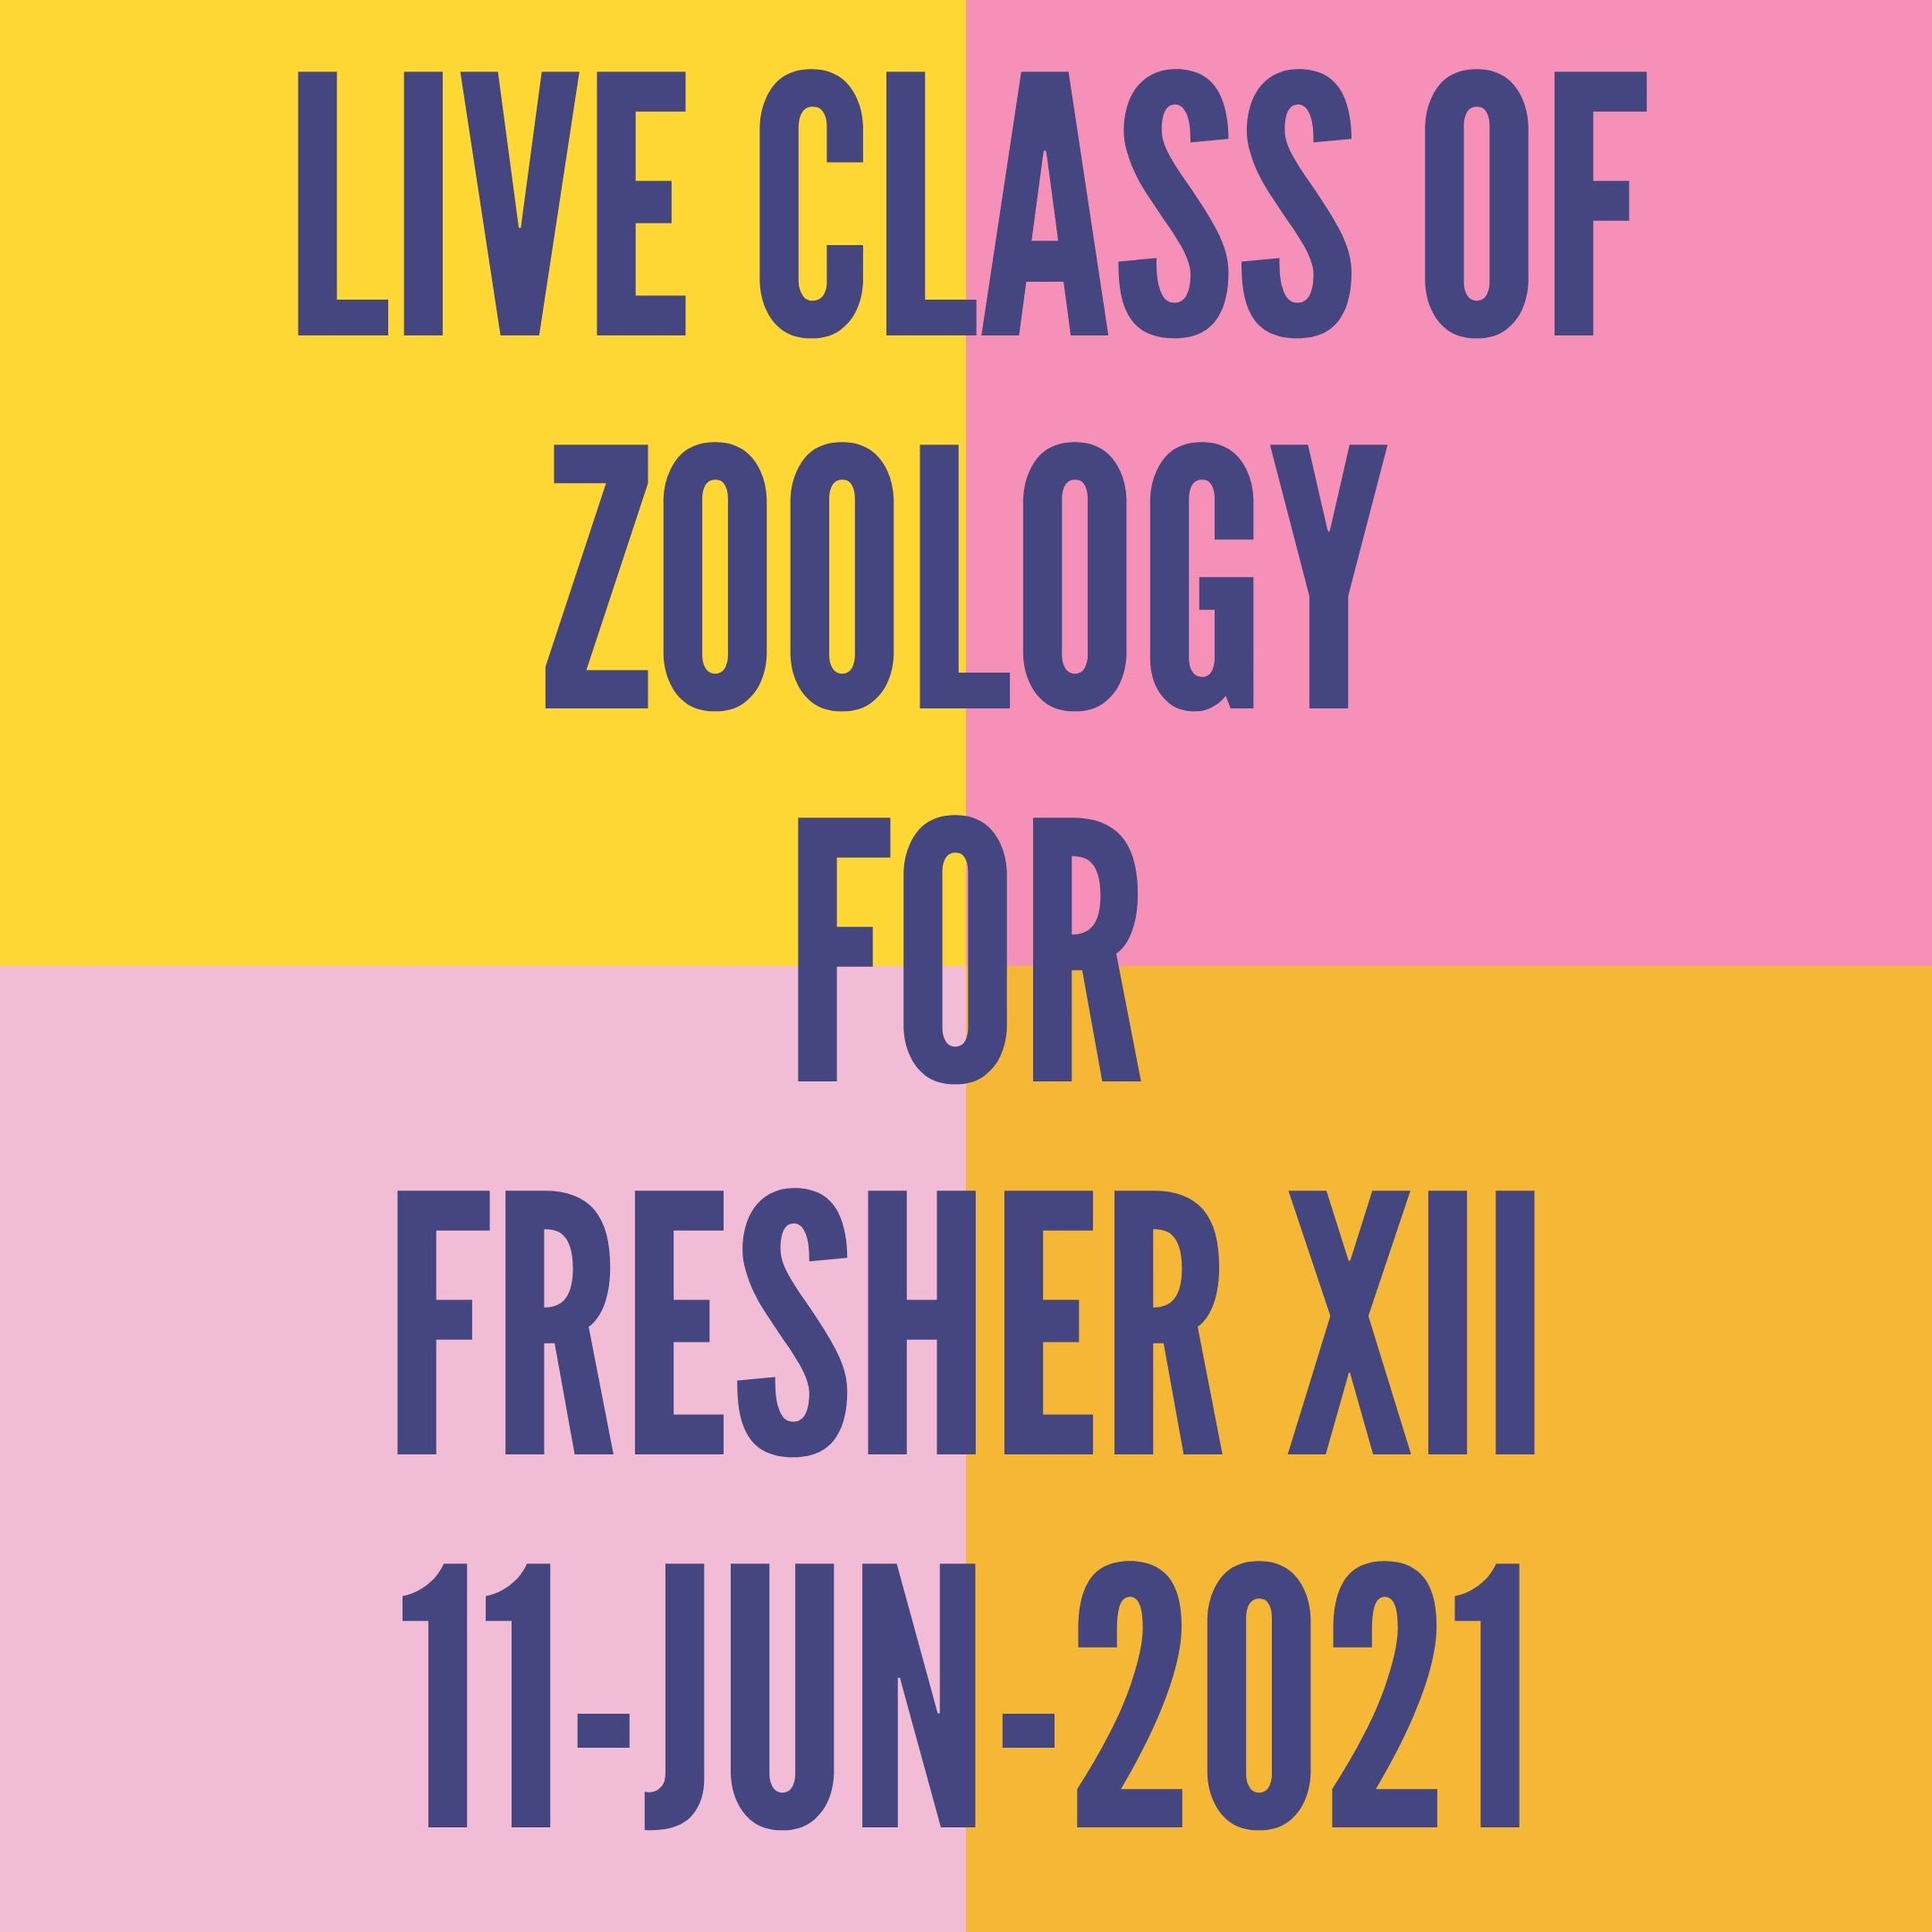 LIVE CLASS OF ZOOLOGY FOR FRESHER XII (11-JUN-2021) HUMAN REPRODUCTION